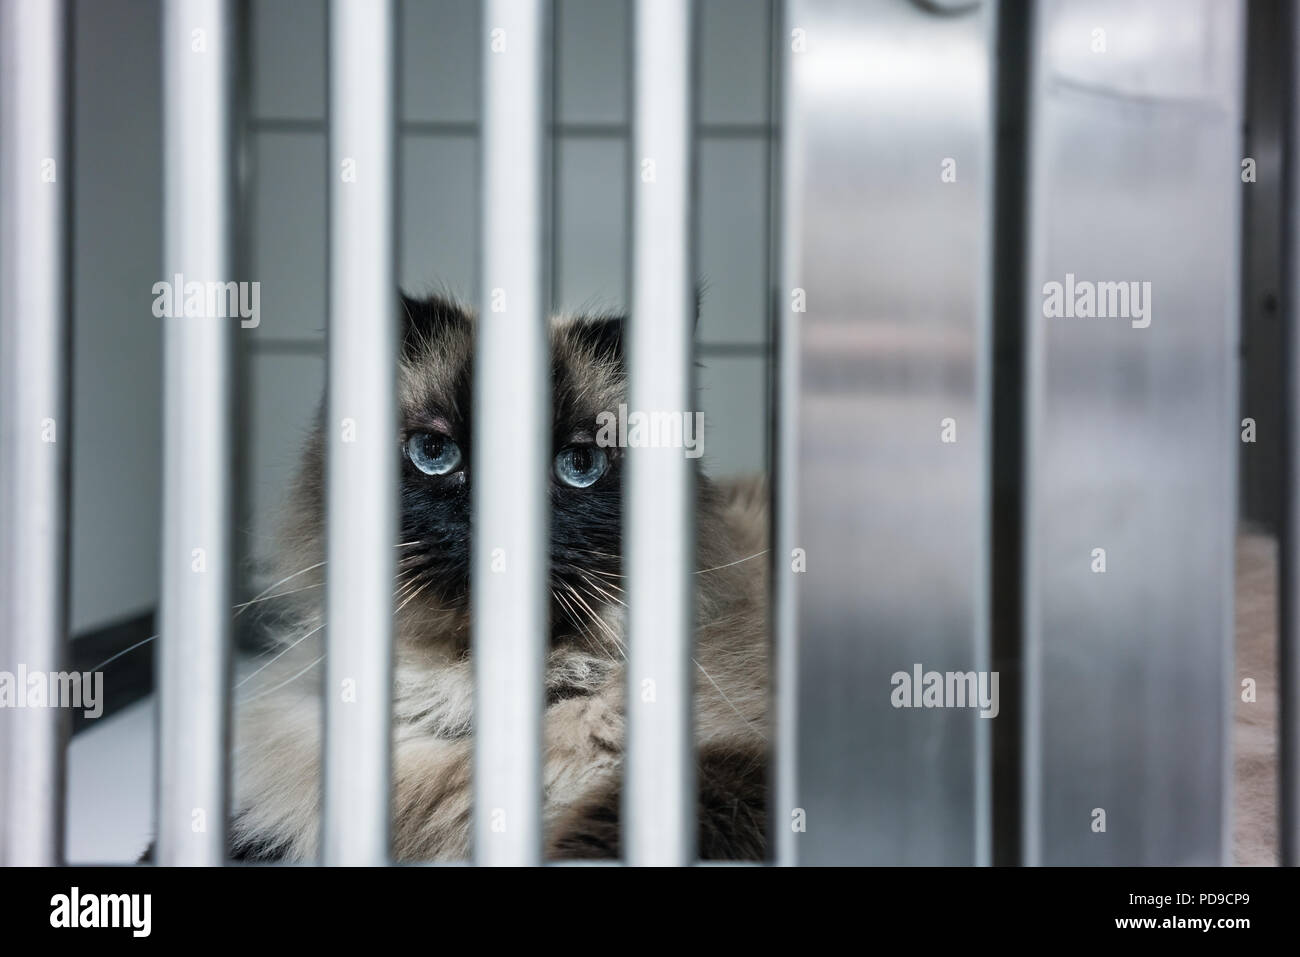 Cat waiting for treatment in cage of veterinarian clinic - Stock Image